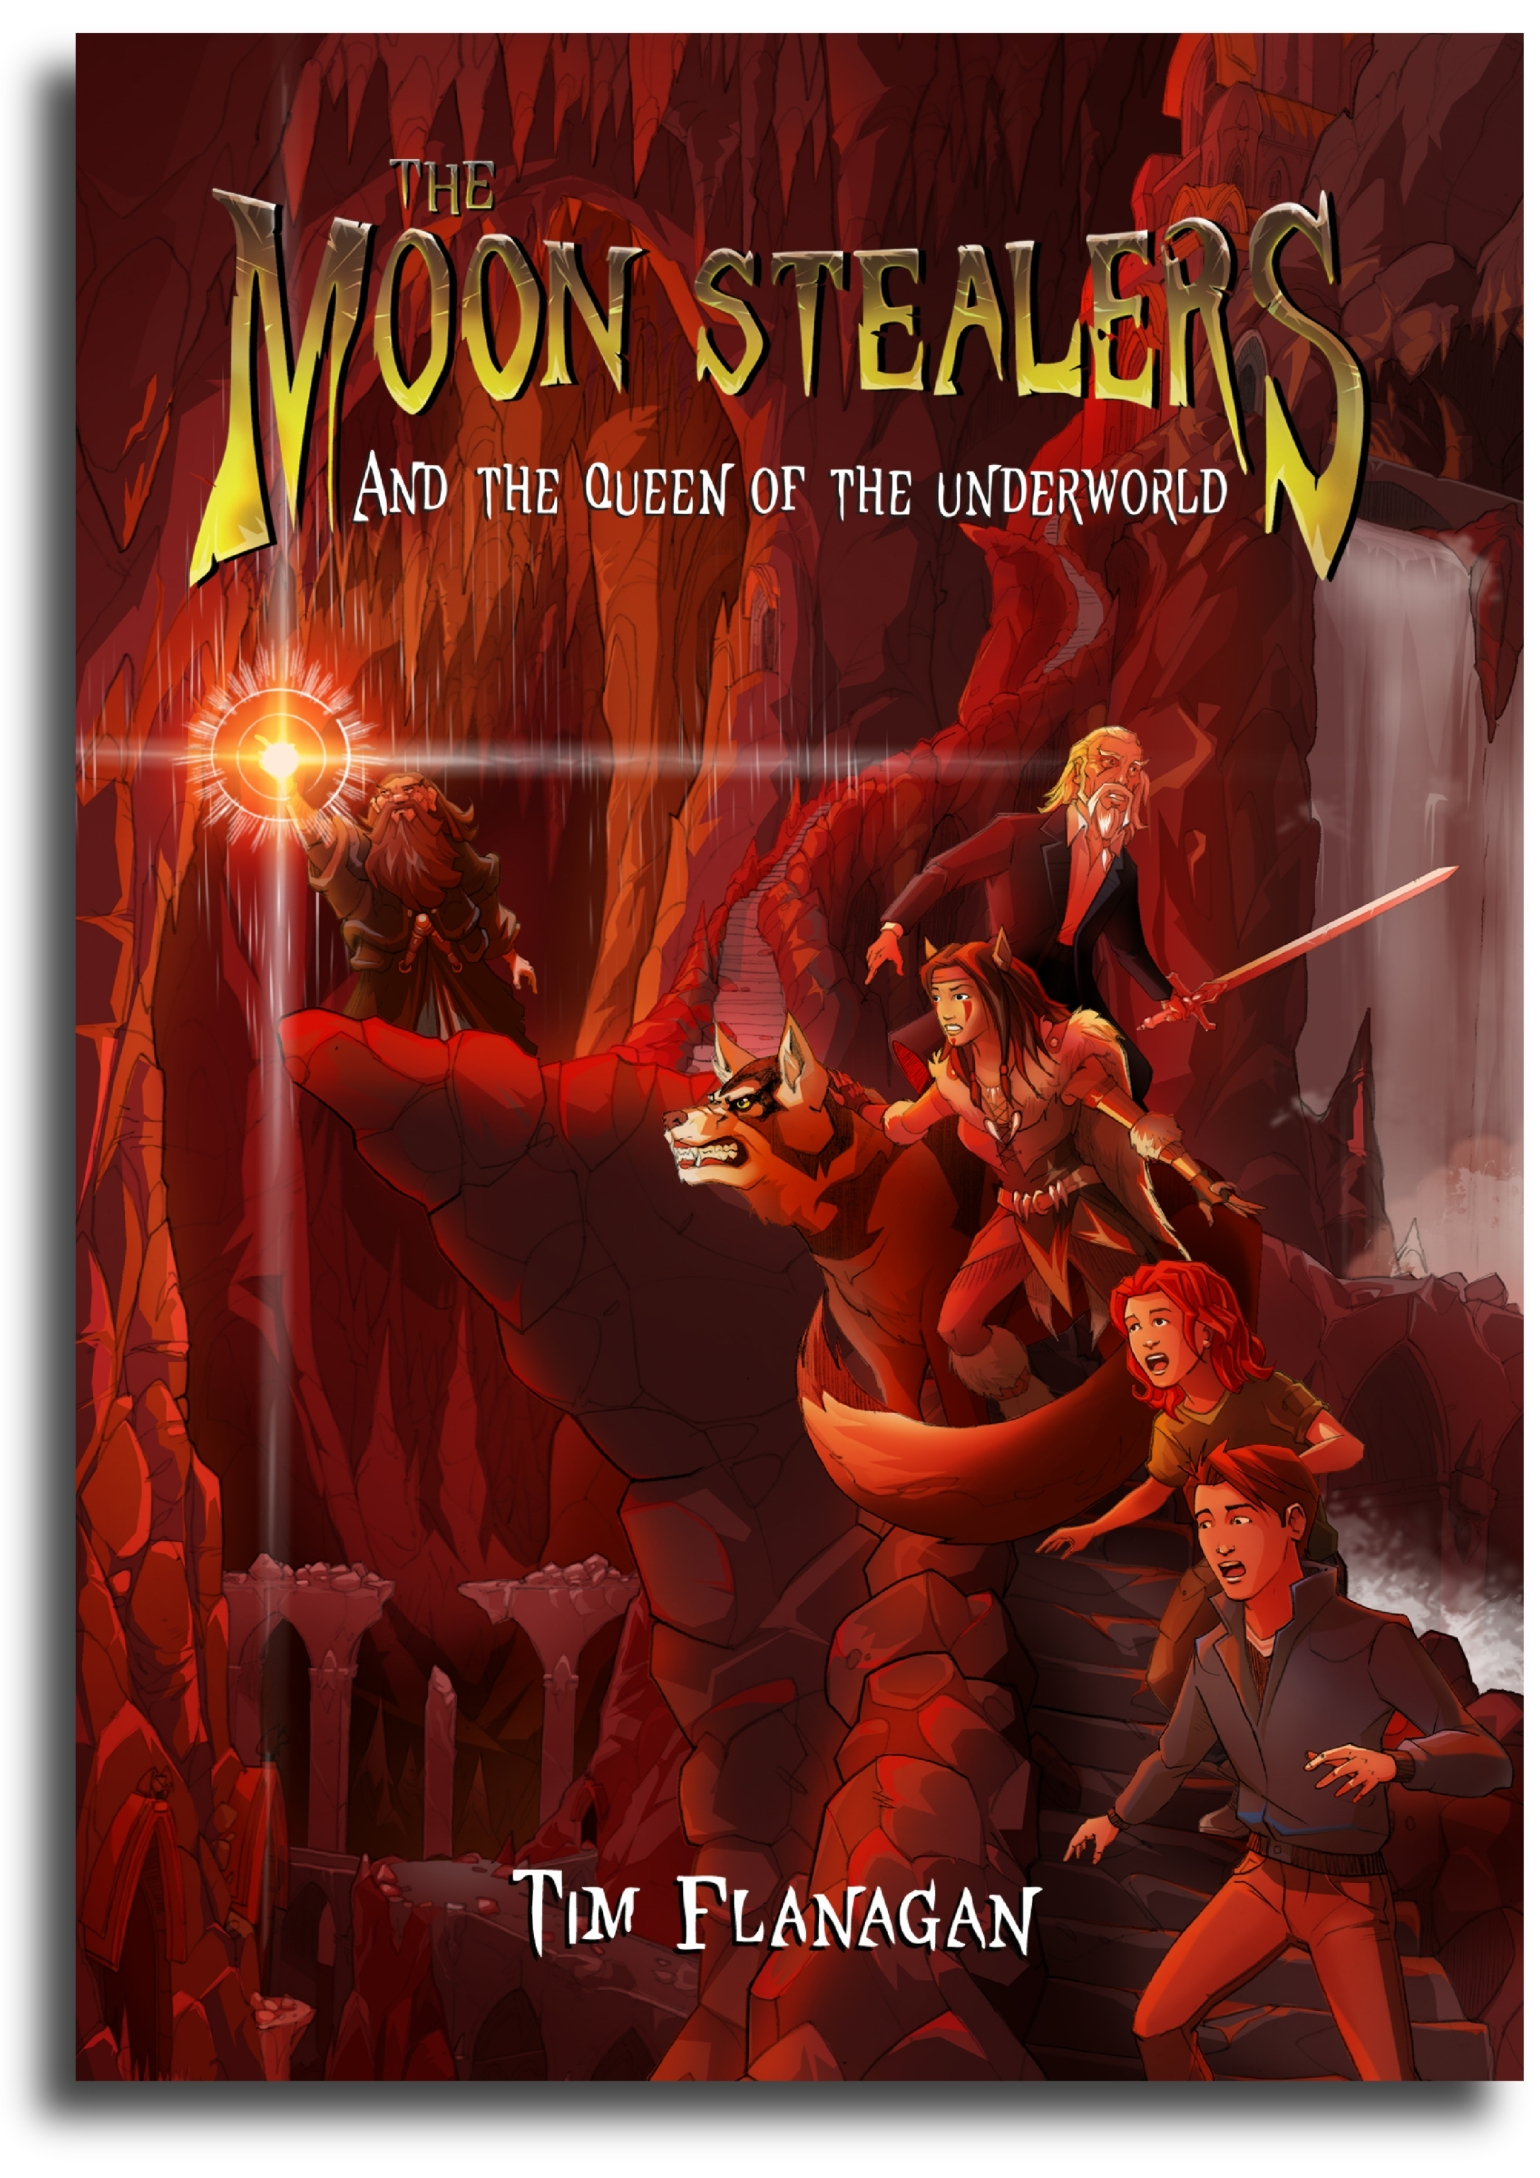 The Queen of the Underworld (The Moon Stealers Book 2)